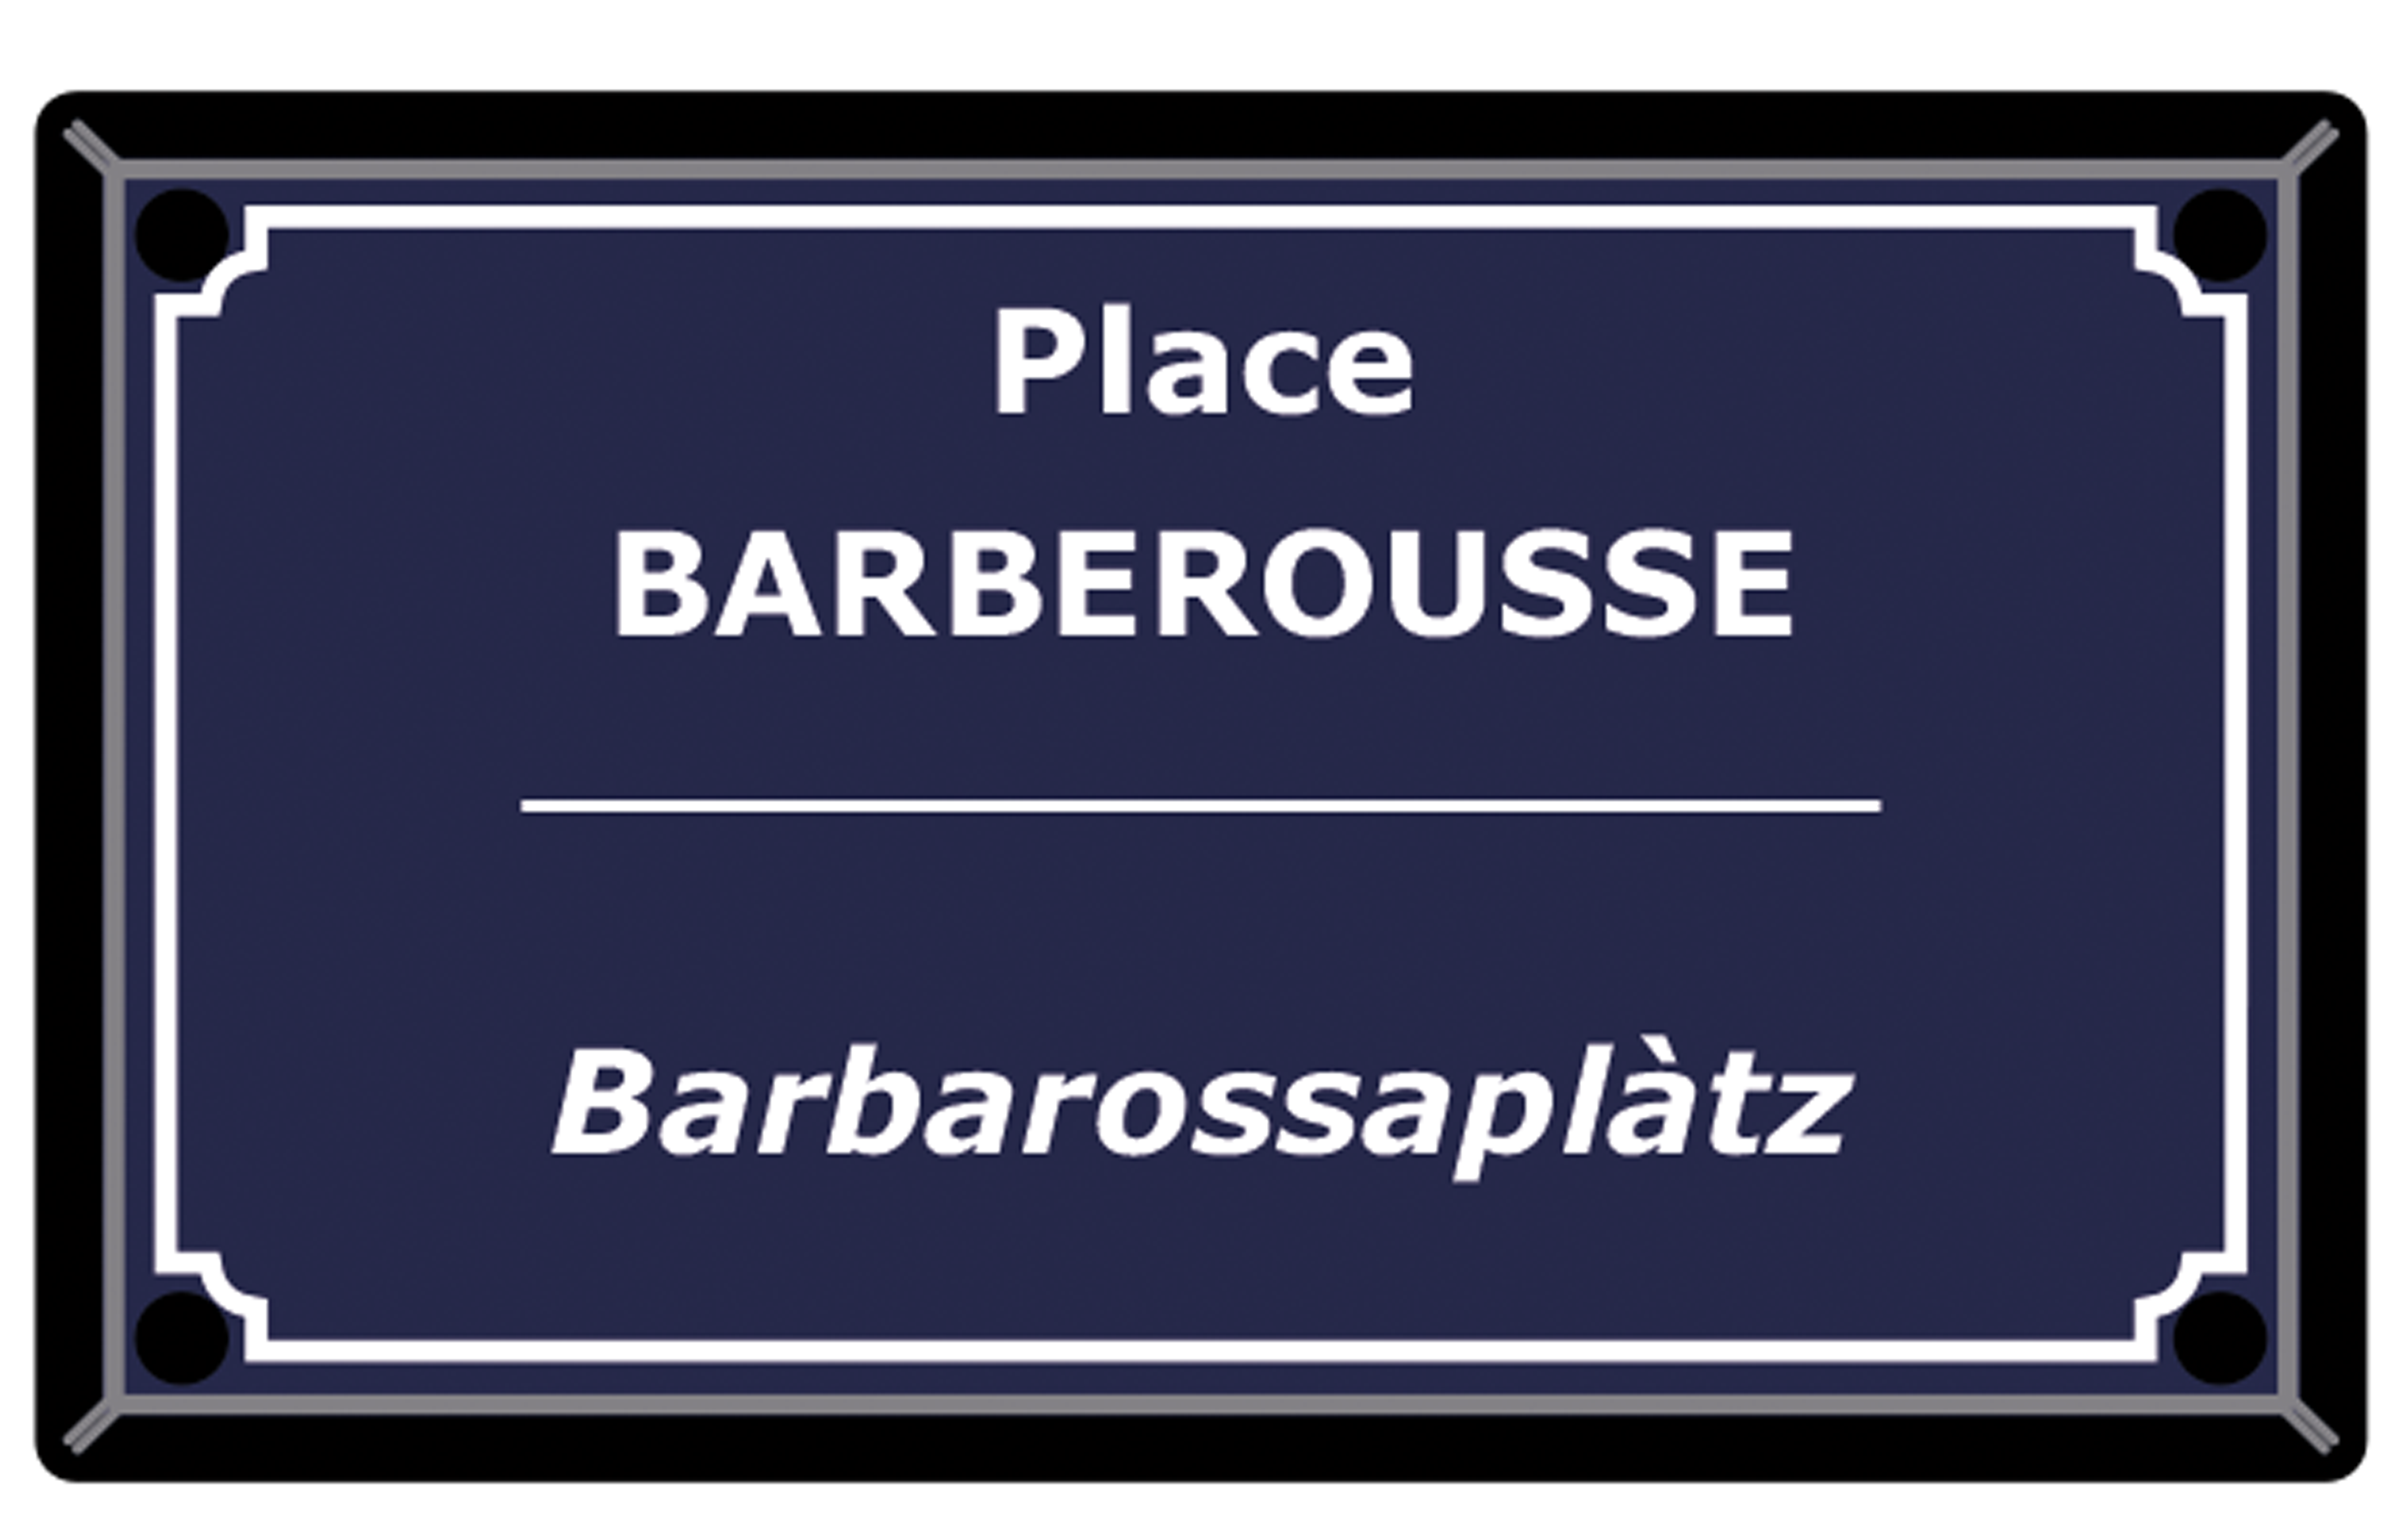 Place Barberousse